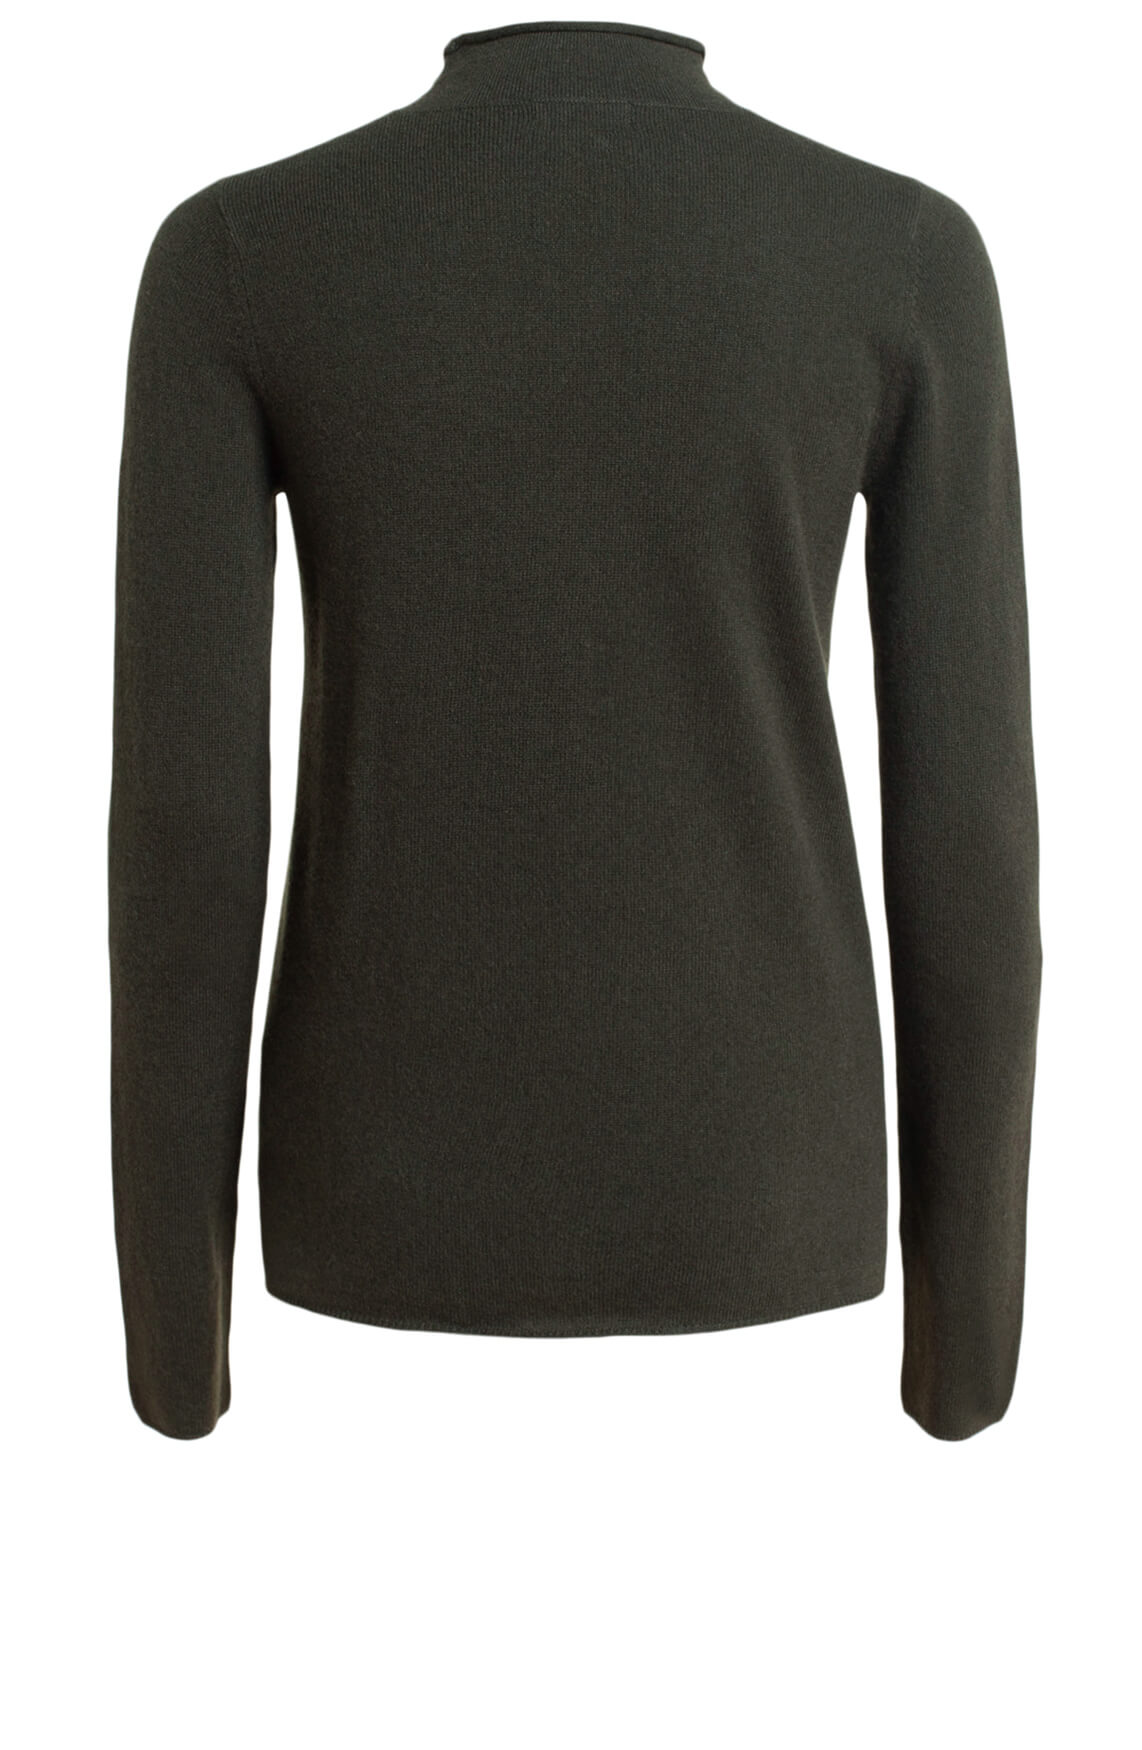 Anna Dames Cashmere pullover met col groen